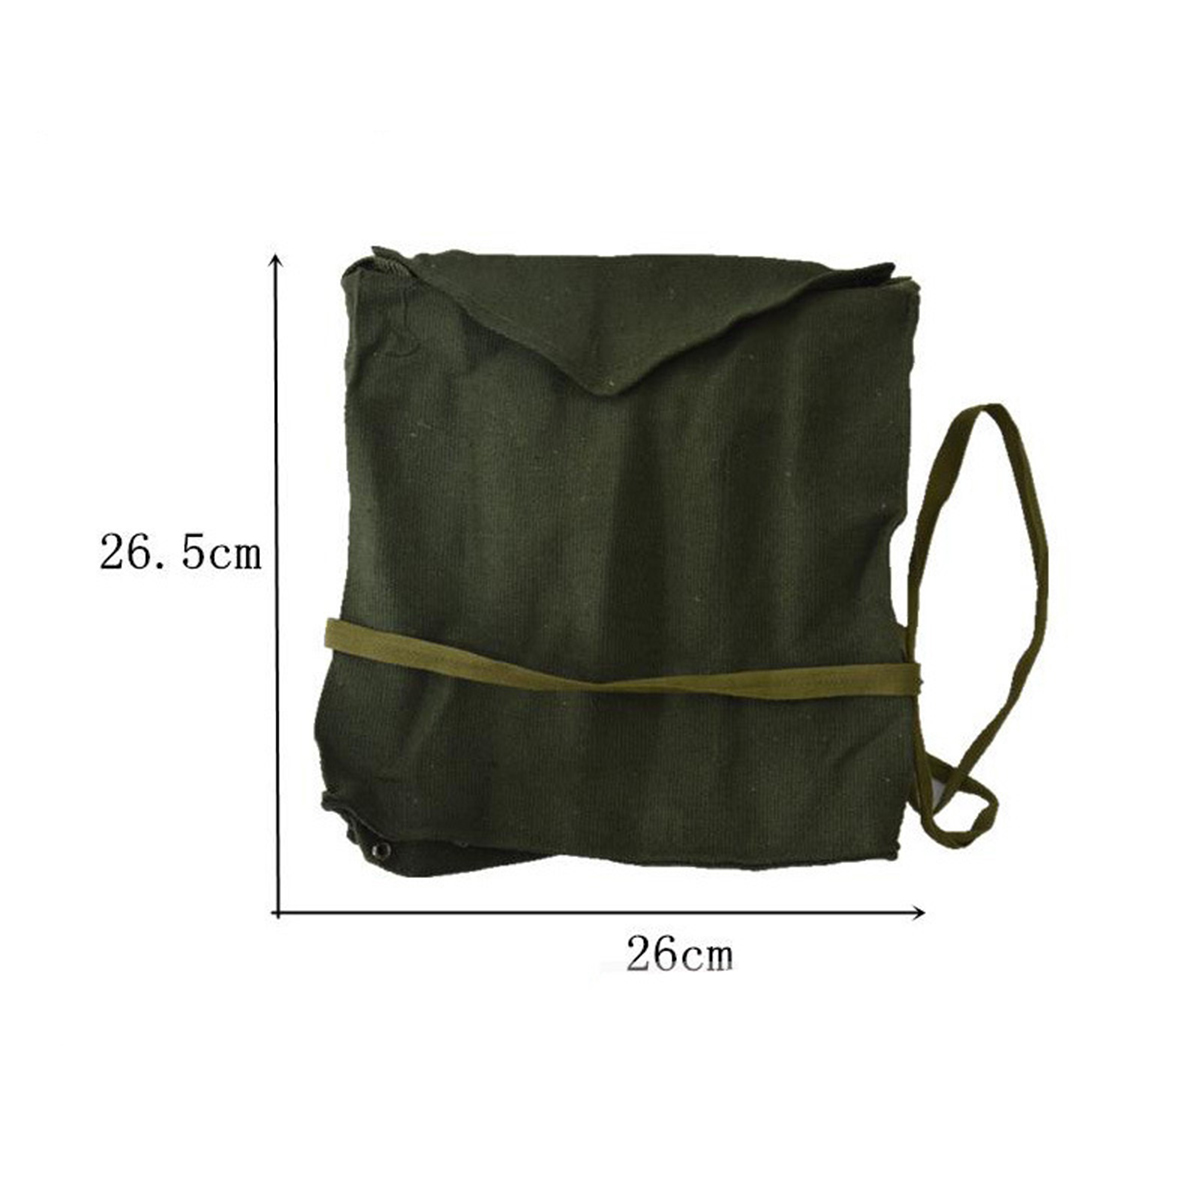 Camping & Hiking Ww2 Wwii Army Anti Gas Mask Iron Tank And Black Bag Picnic Bags